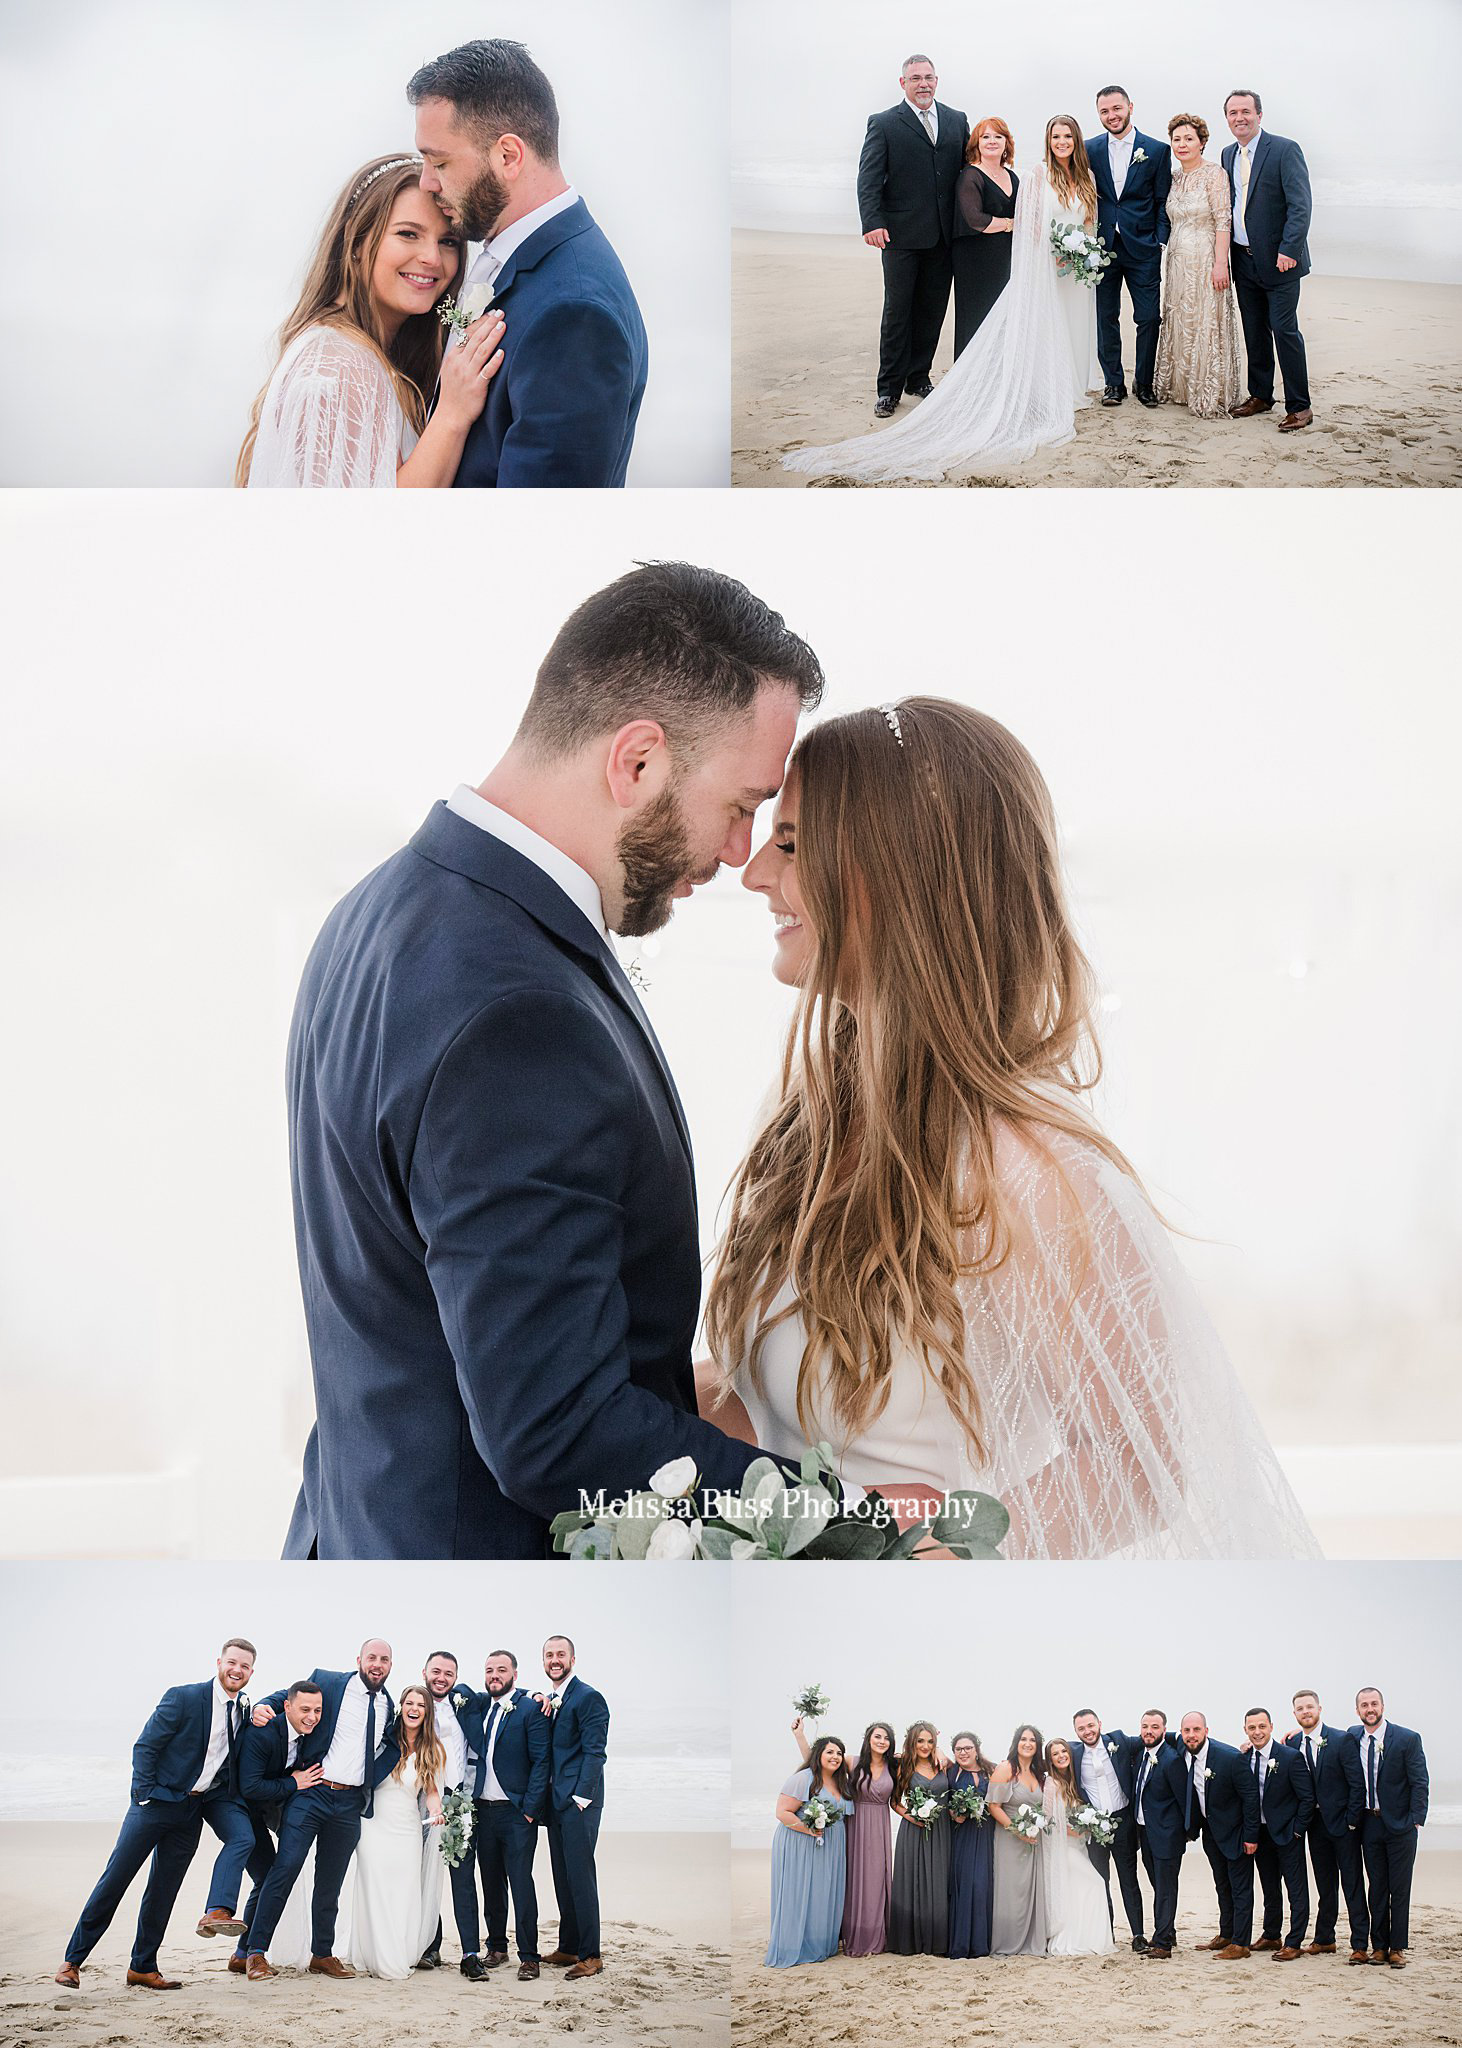 Sandridge-beach-wedding-_over-the-moon-cottage-virginia-beach-melissa-bliss-photography.jpg